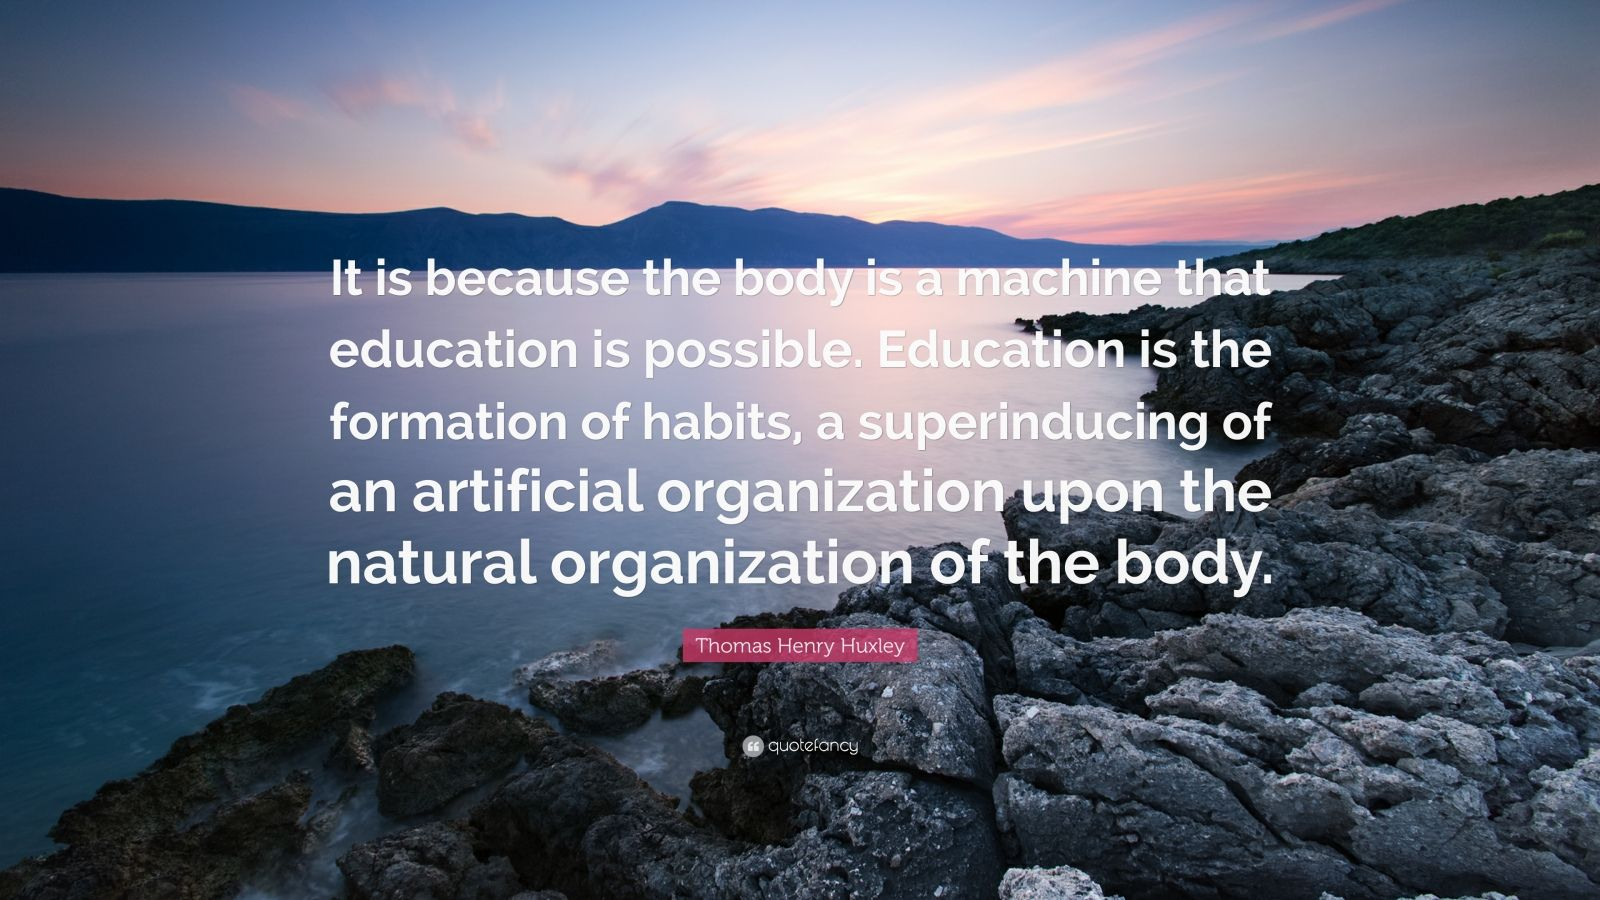 """Thomas Henry Huxley Quote: """"It is because the body is a machine that education is possible. Education is the formation of habits, a superinducing of an artificial organization upon the natural organization of the body."""""""